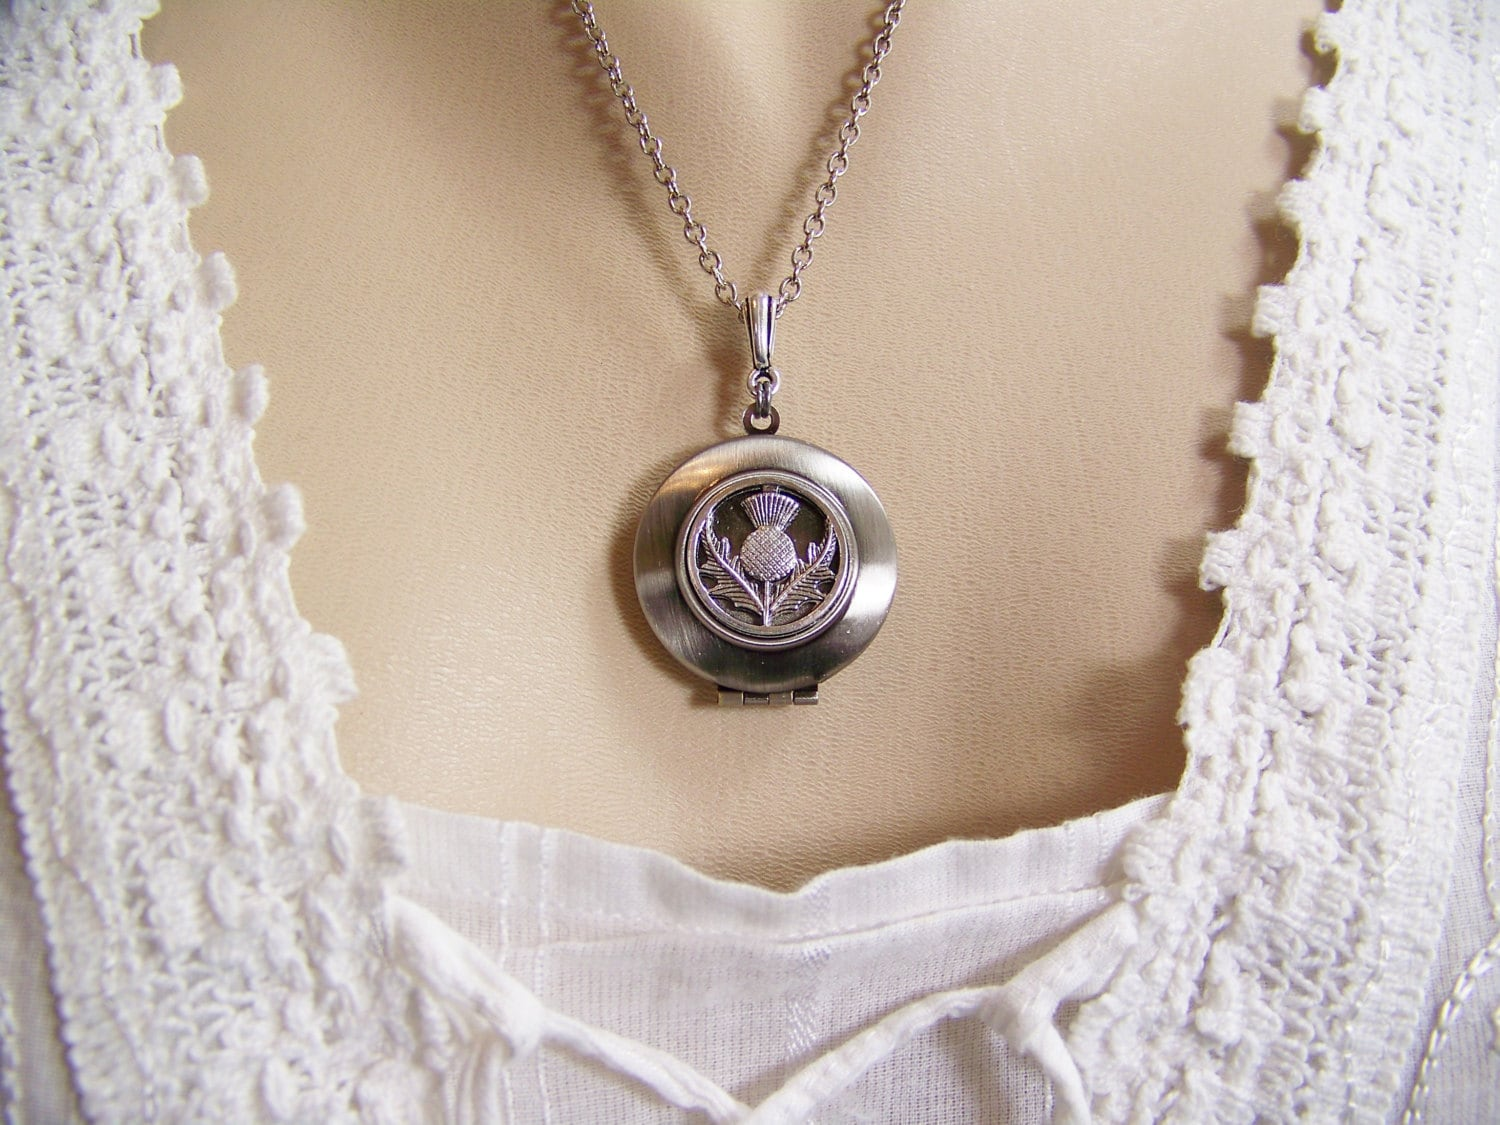 com now locketsisters celtic locketceltic buy sisters etsy locket heart from ori details heartlocketsilver lockets silver